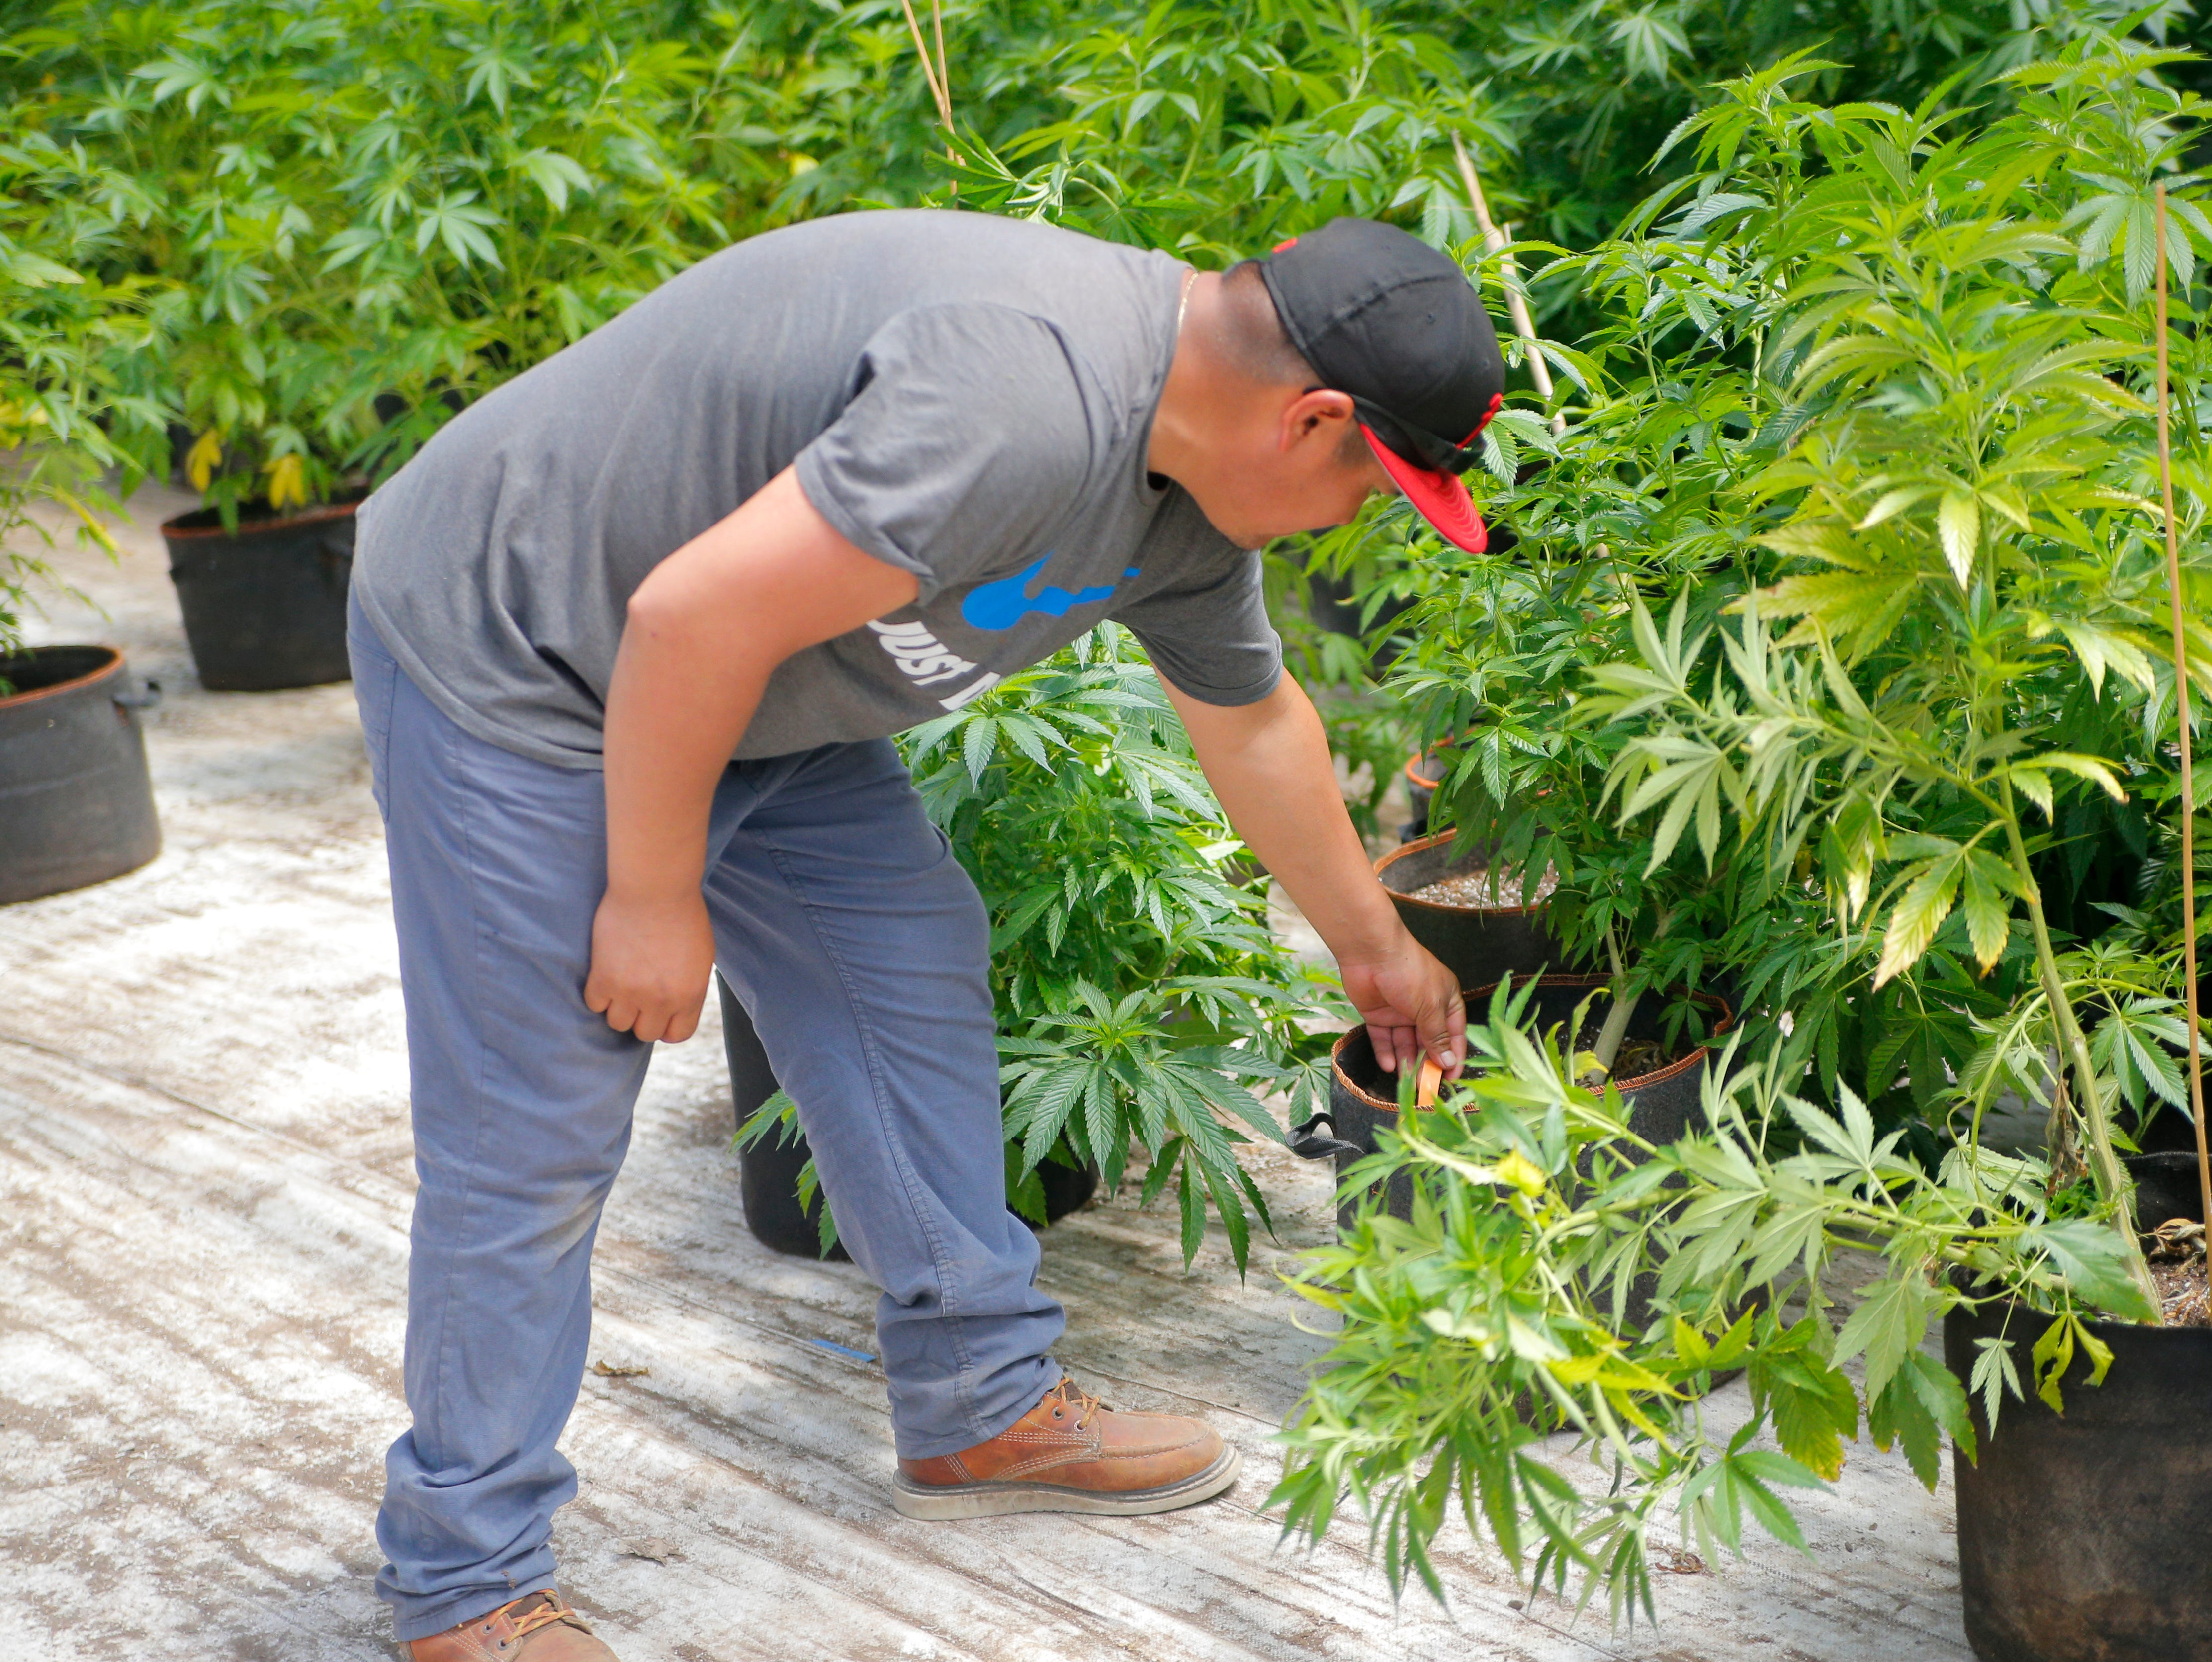 Melitón Andres Hernadez examines a cannabis plant April 19, 2019, at Pacific Reserve, a nursery and cultivation site where he works outside of Salinas.